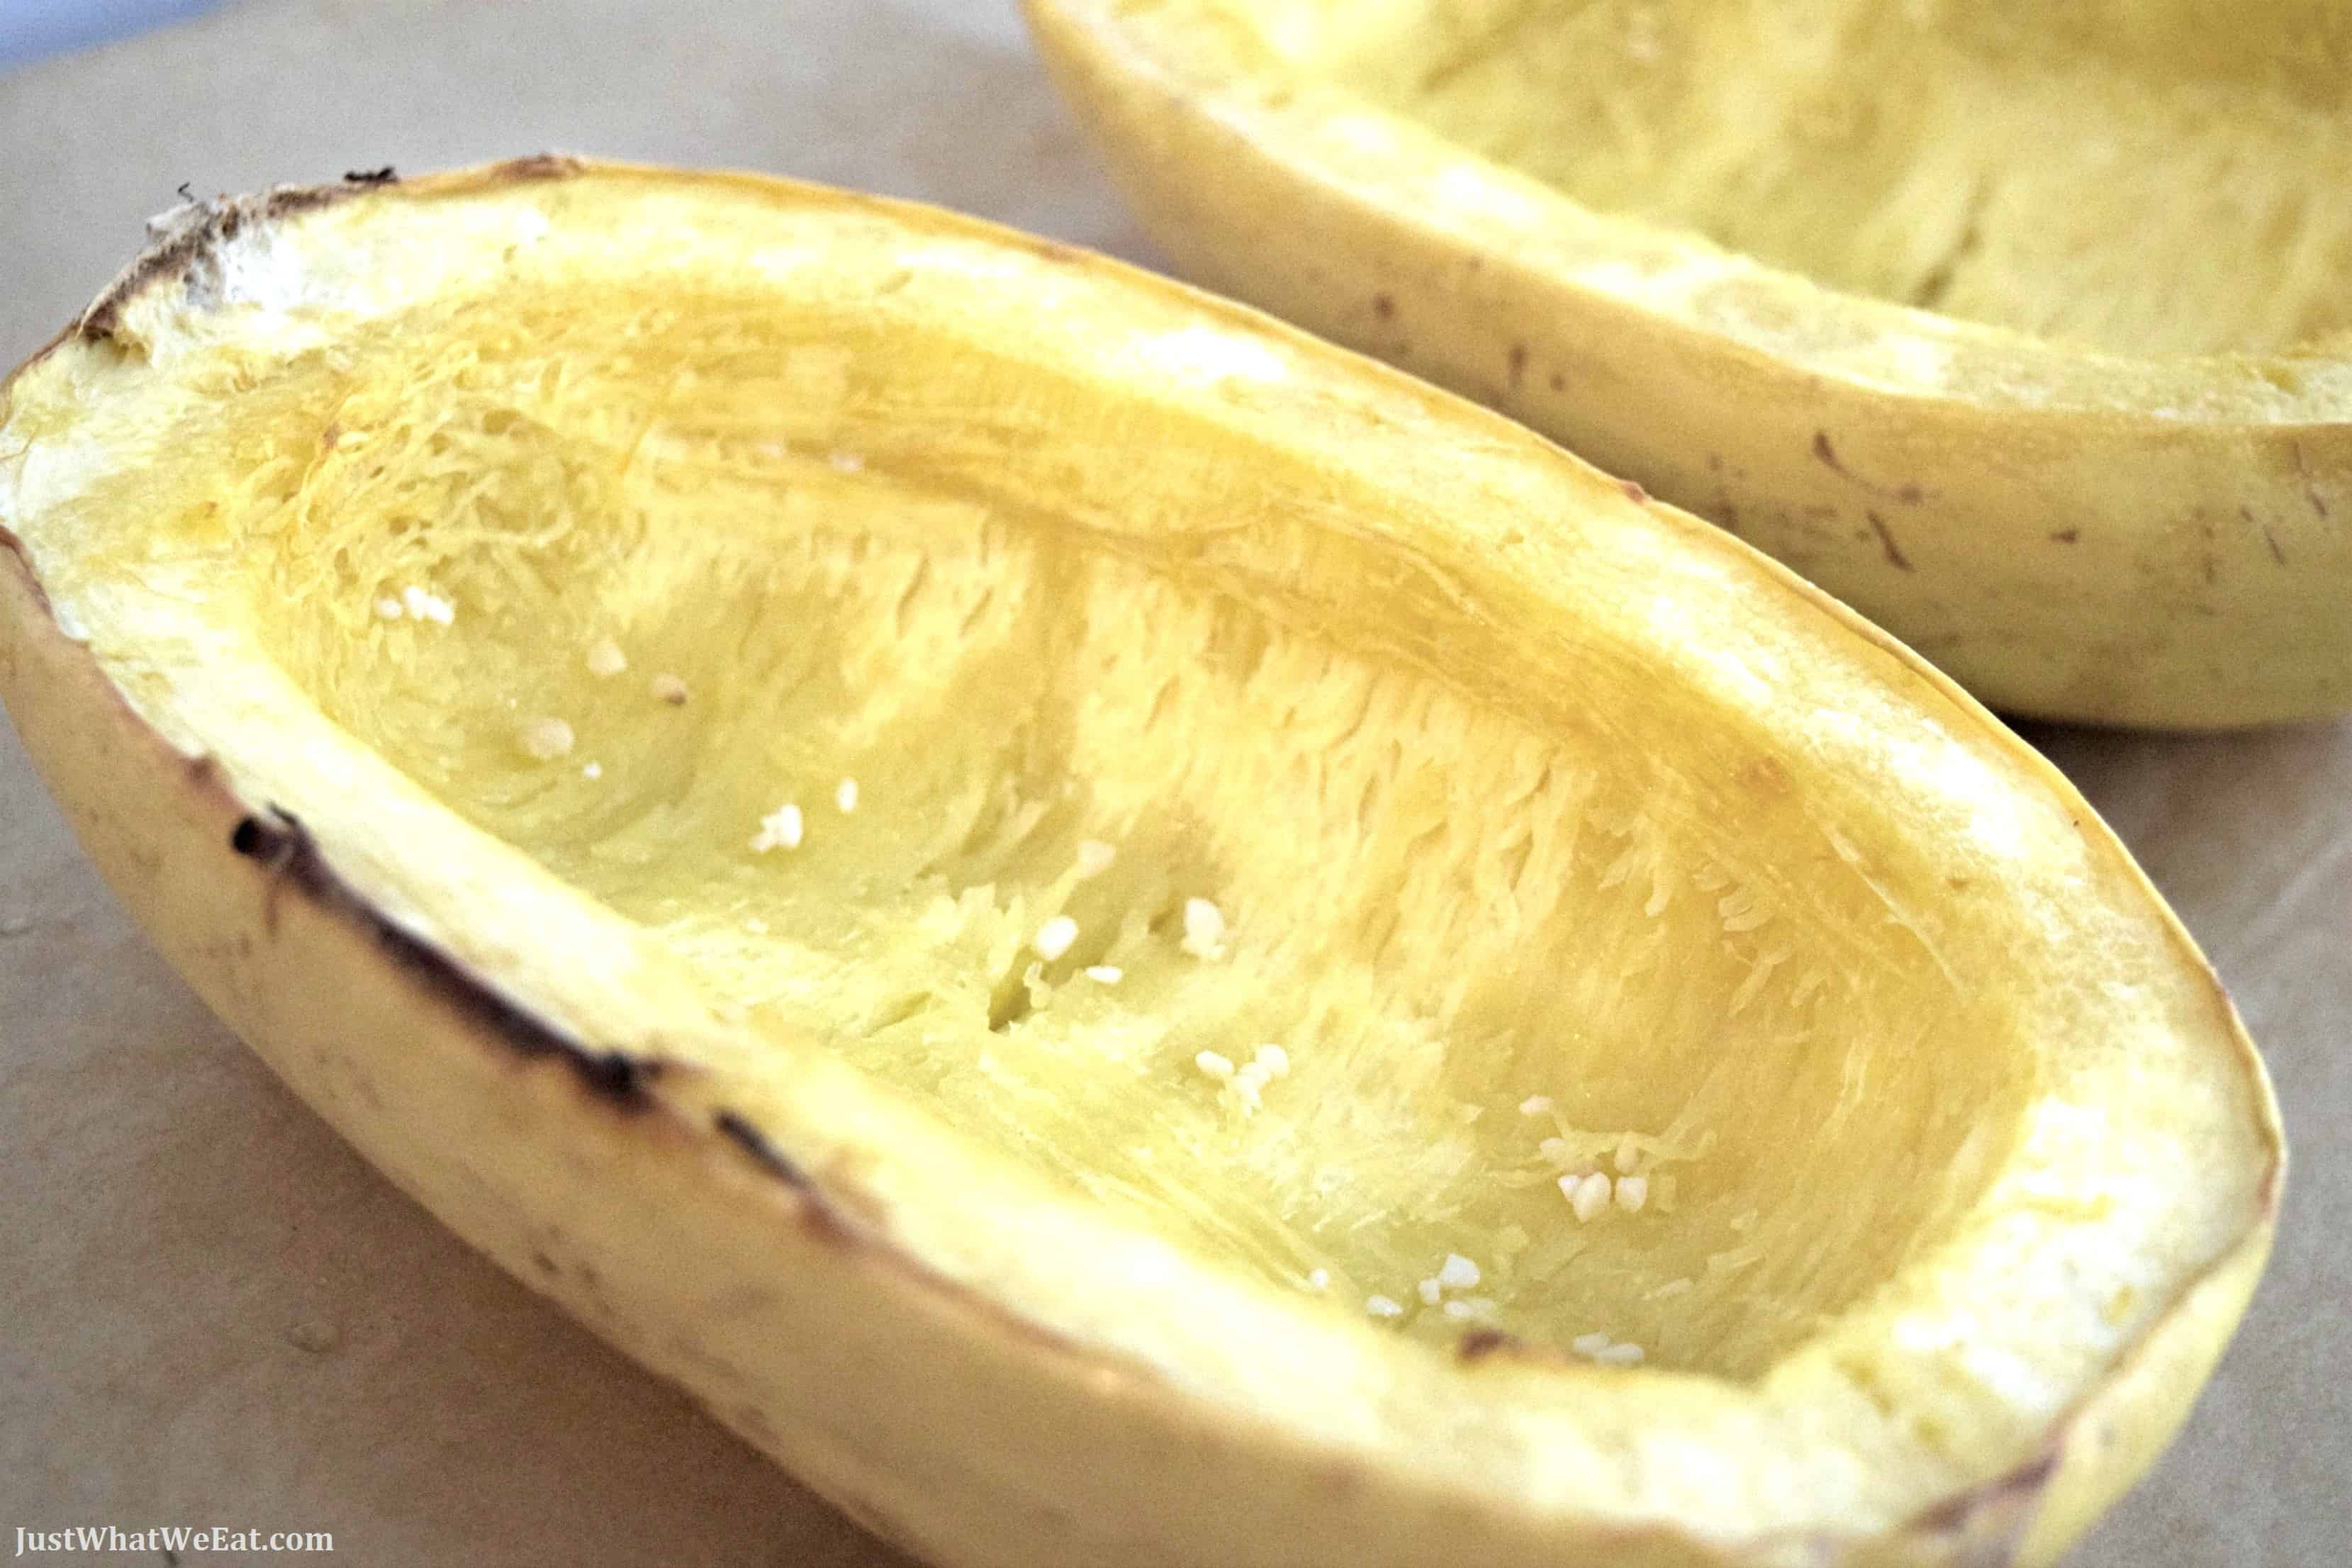 Roasted Garlic Spaghetti Squash